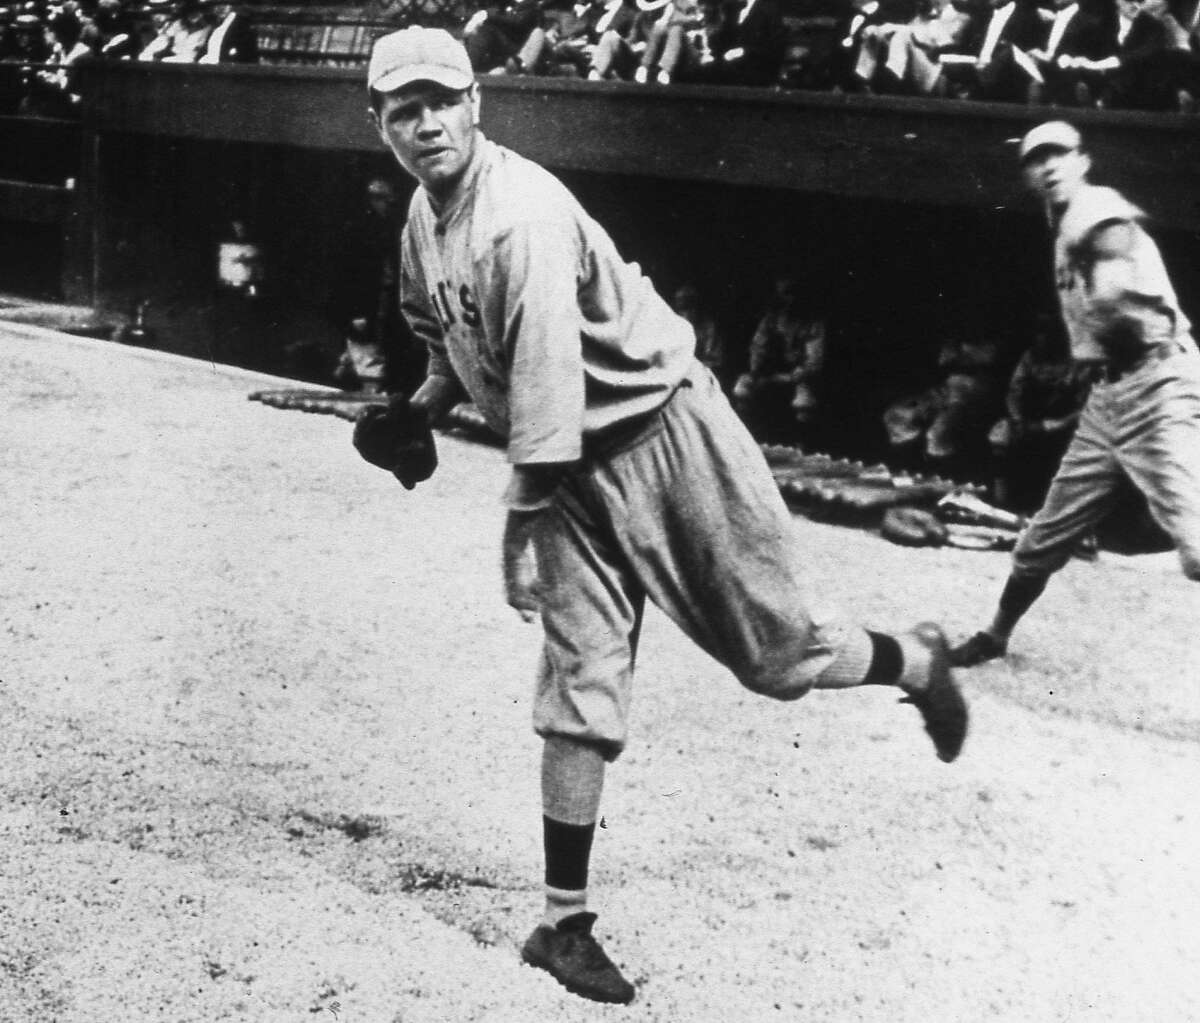 Babe Ruth, began his Major League Baseball career at pitcher for the Boston Red Sox in 1914. On the offensive side, he went 0-2 in his first appearnce before being replaced by a pinch hitter.